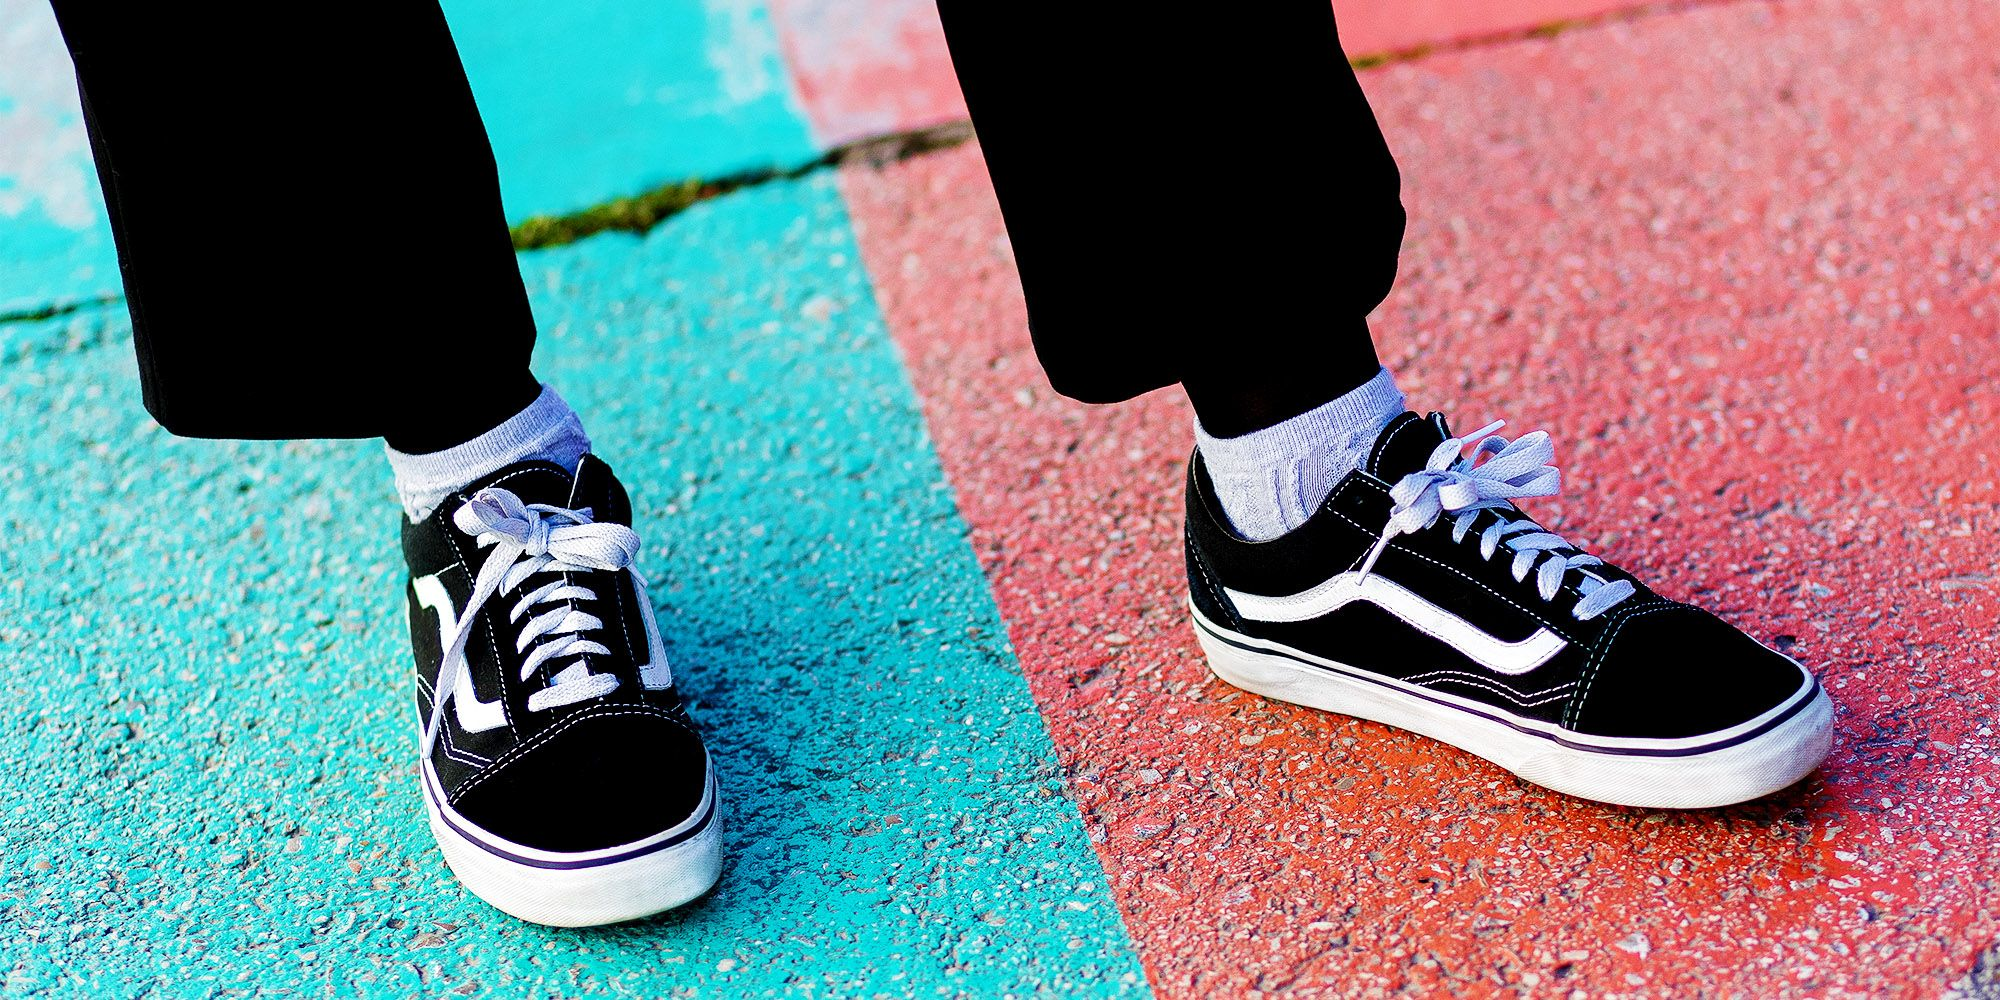 The 13 Coolest Sneakers Under $100